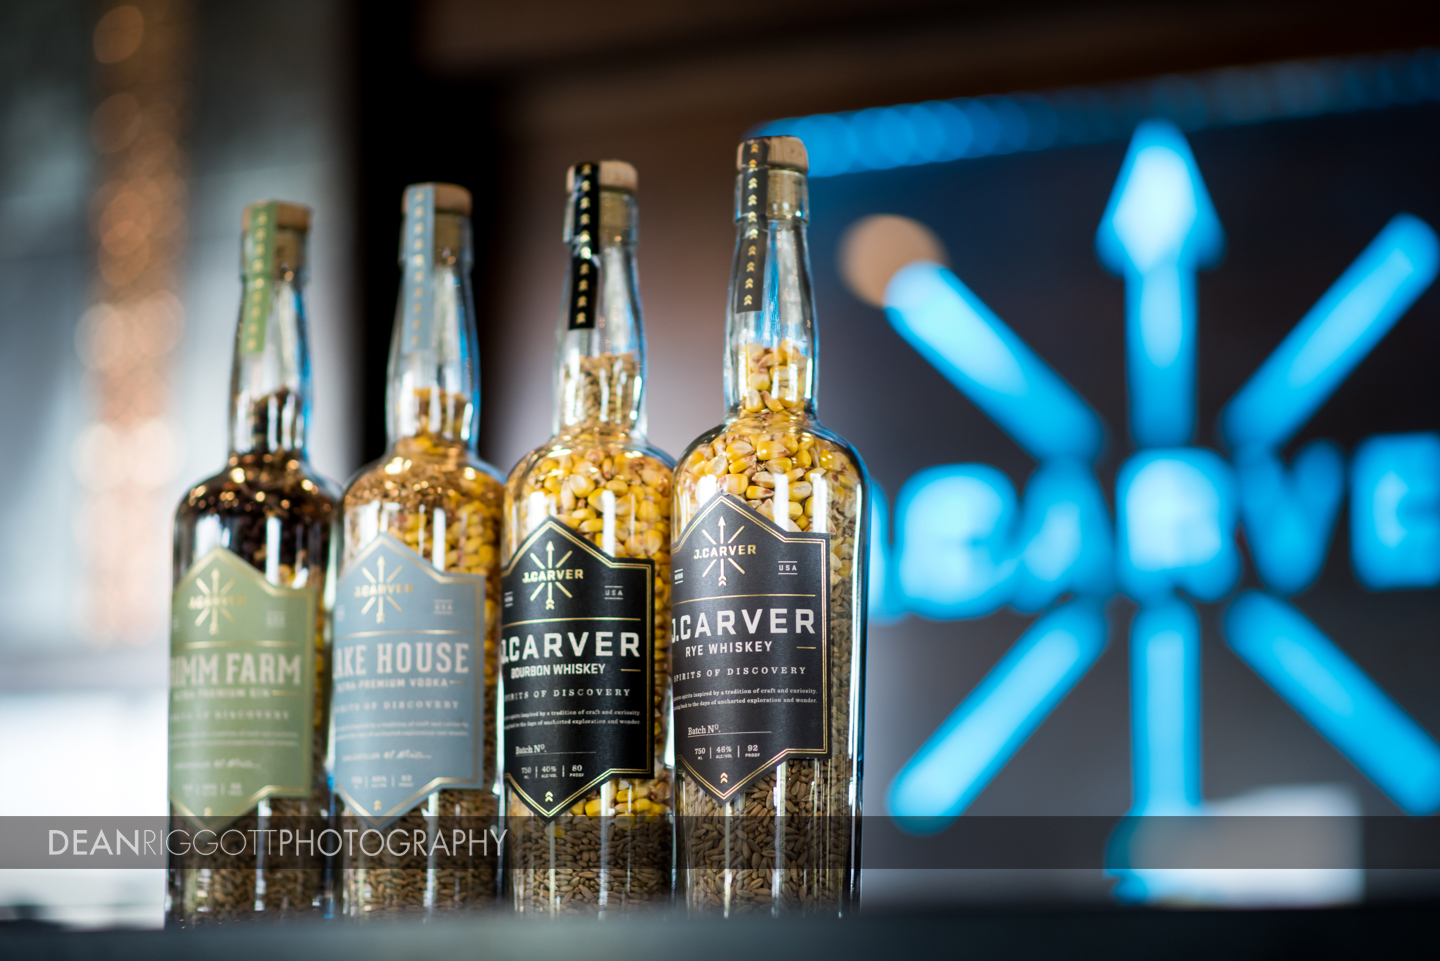 Hospitality photography at J. Carver Distillery in Waconia, Minnesota.